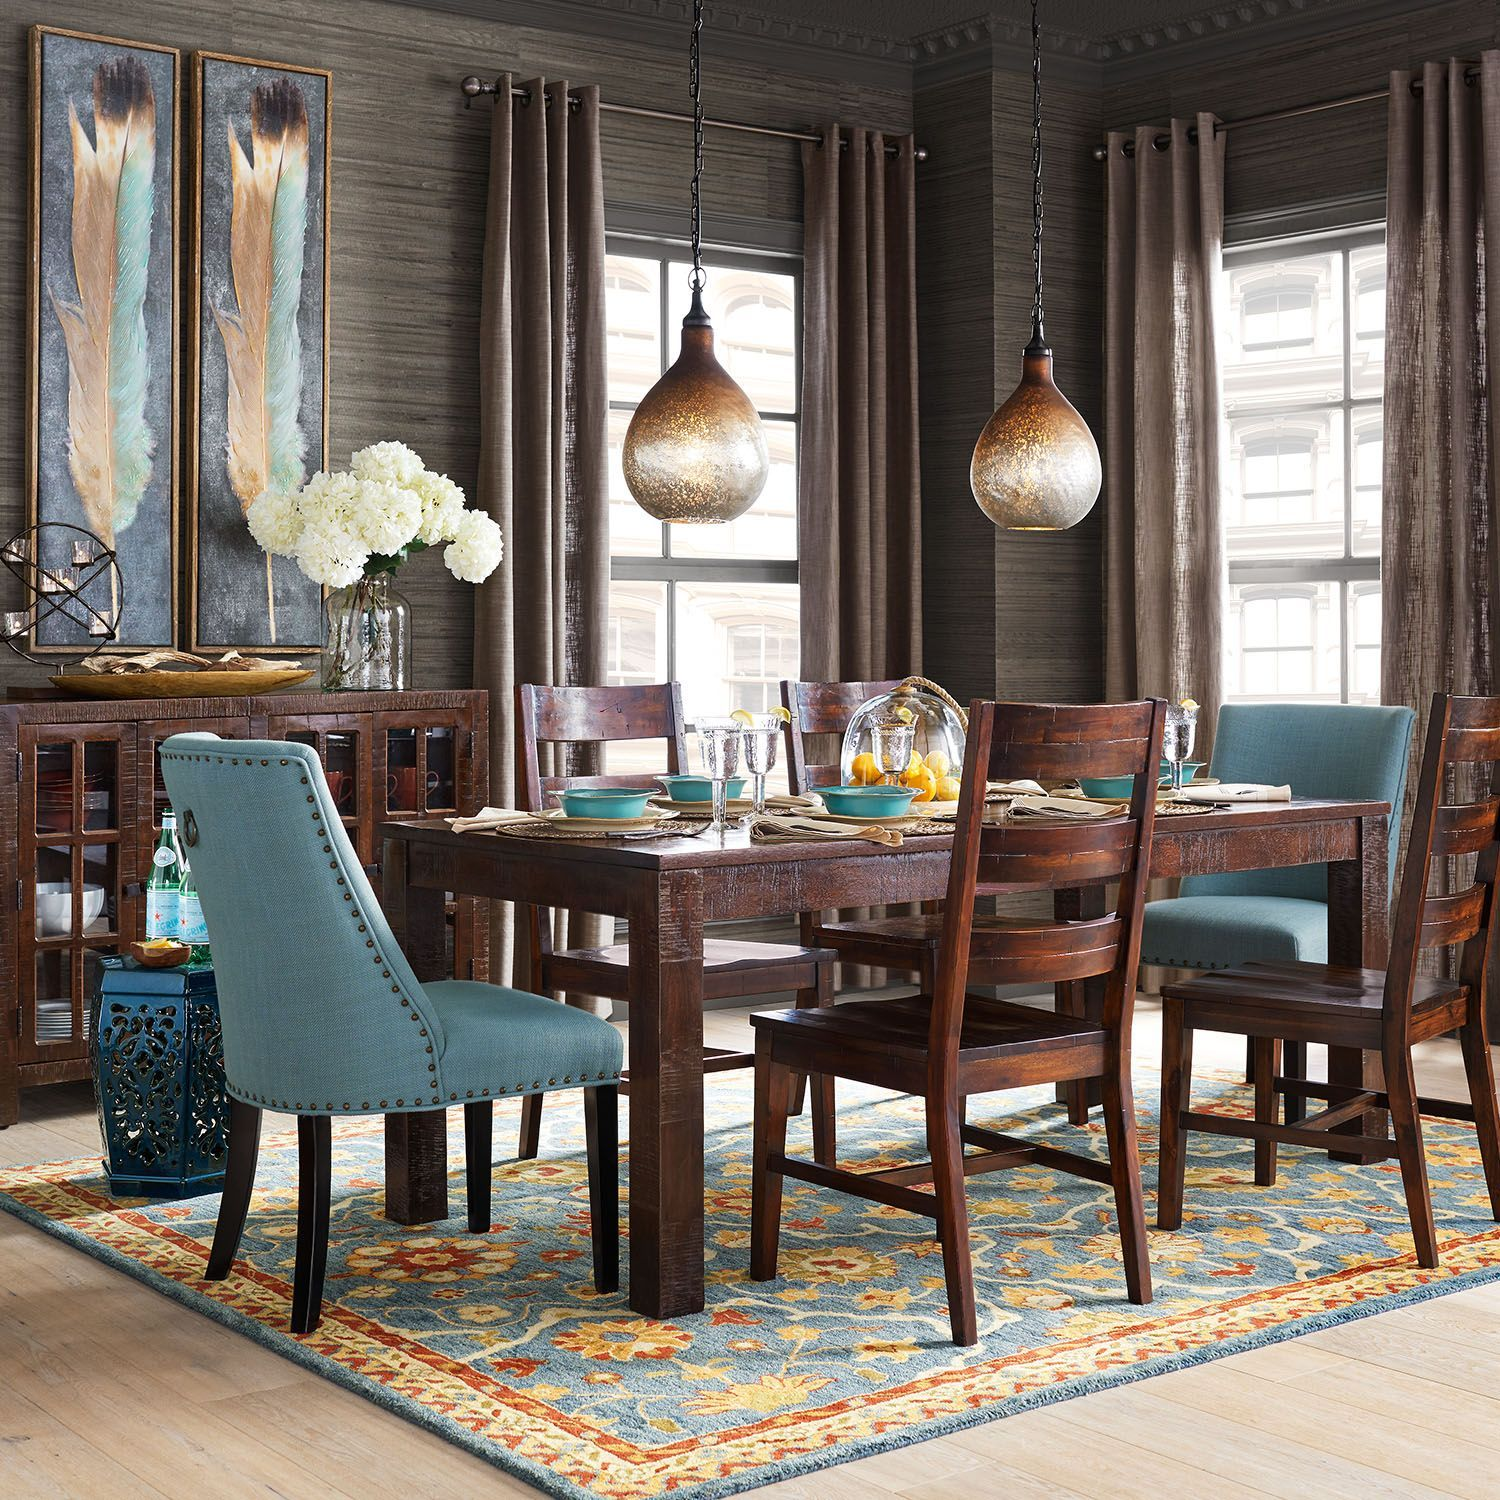 brown dining chairs. Parsons Tobacco Brown Dining Chair Chairs T